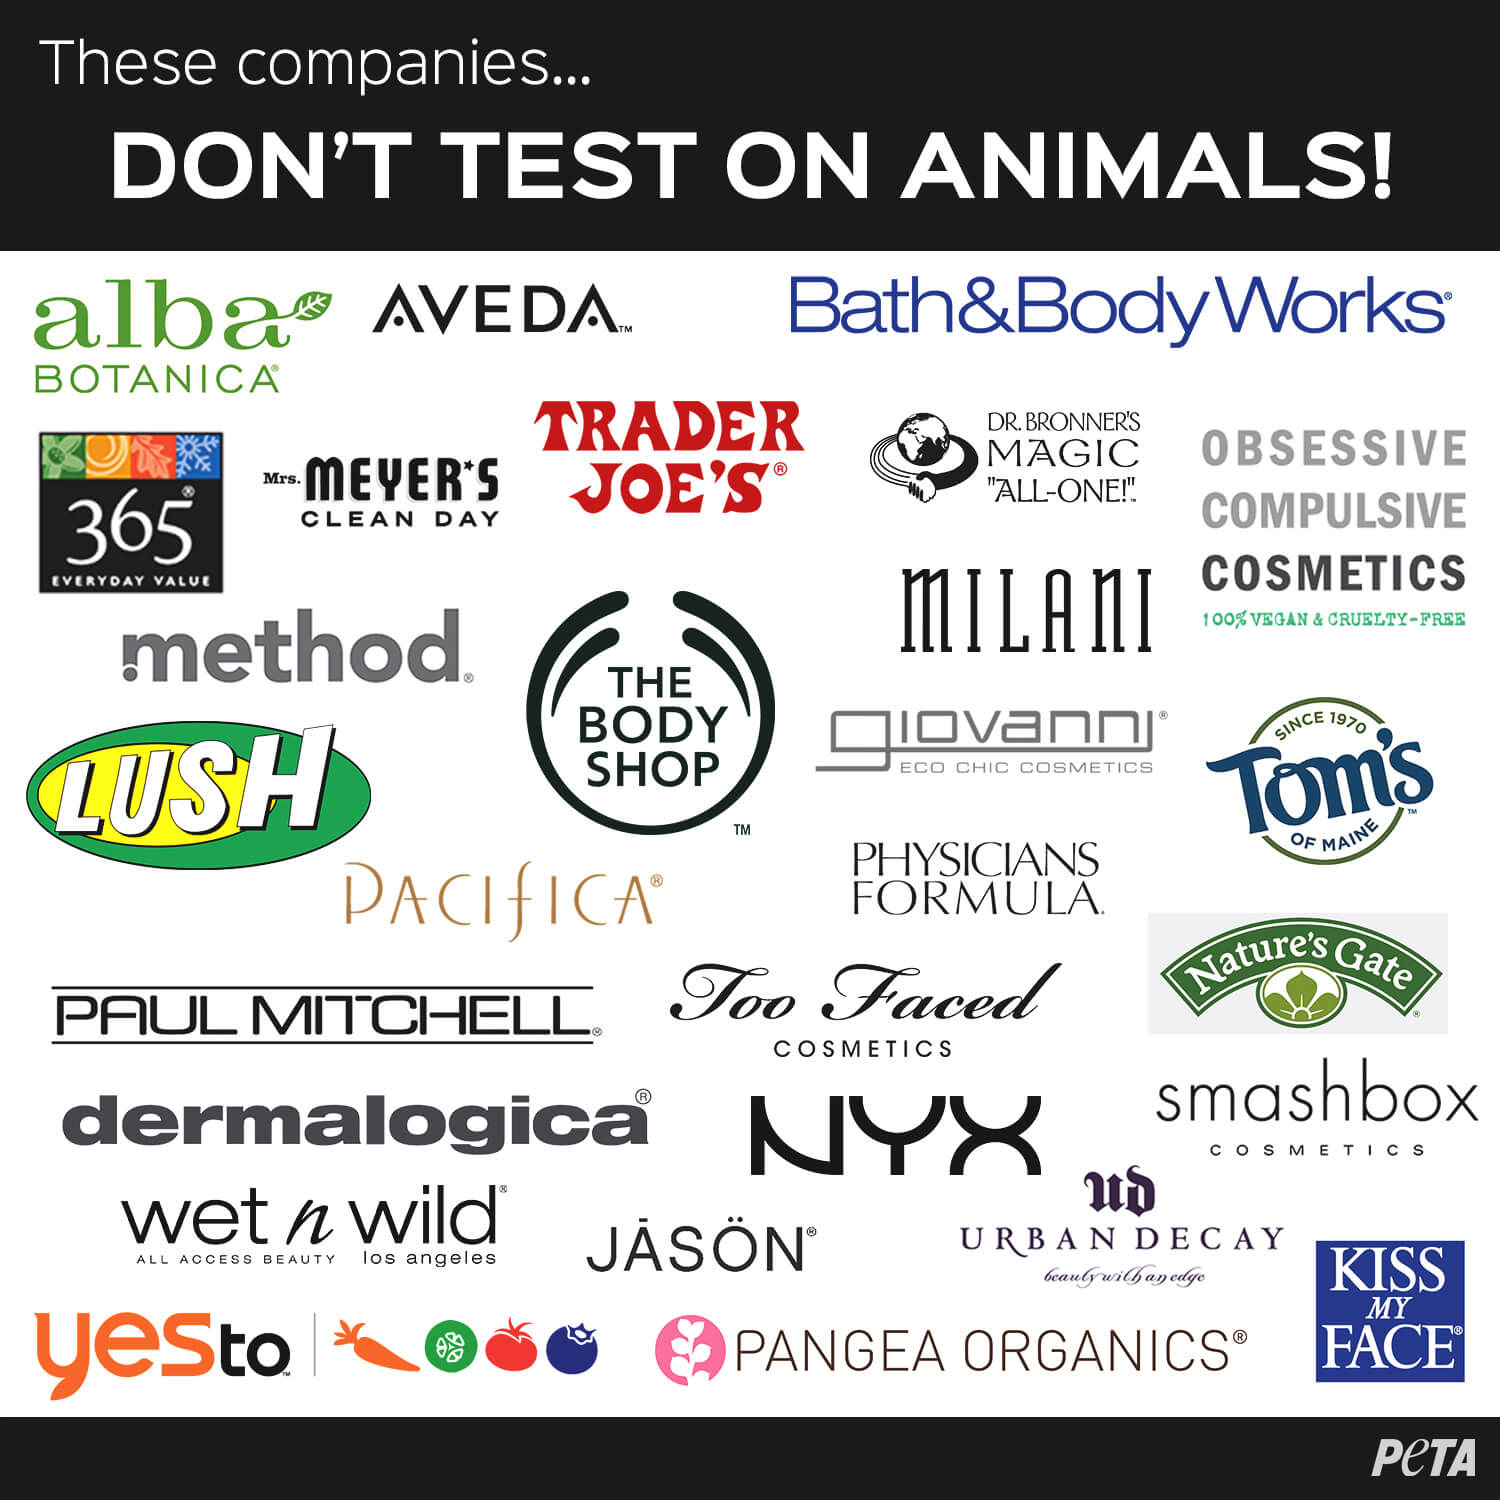 How To End Animal Testing